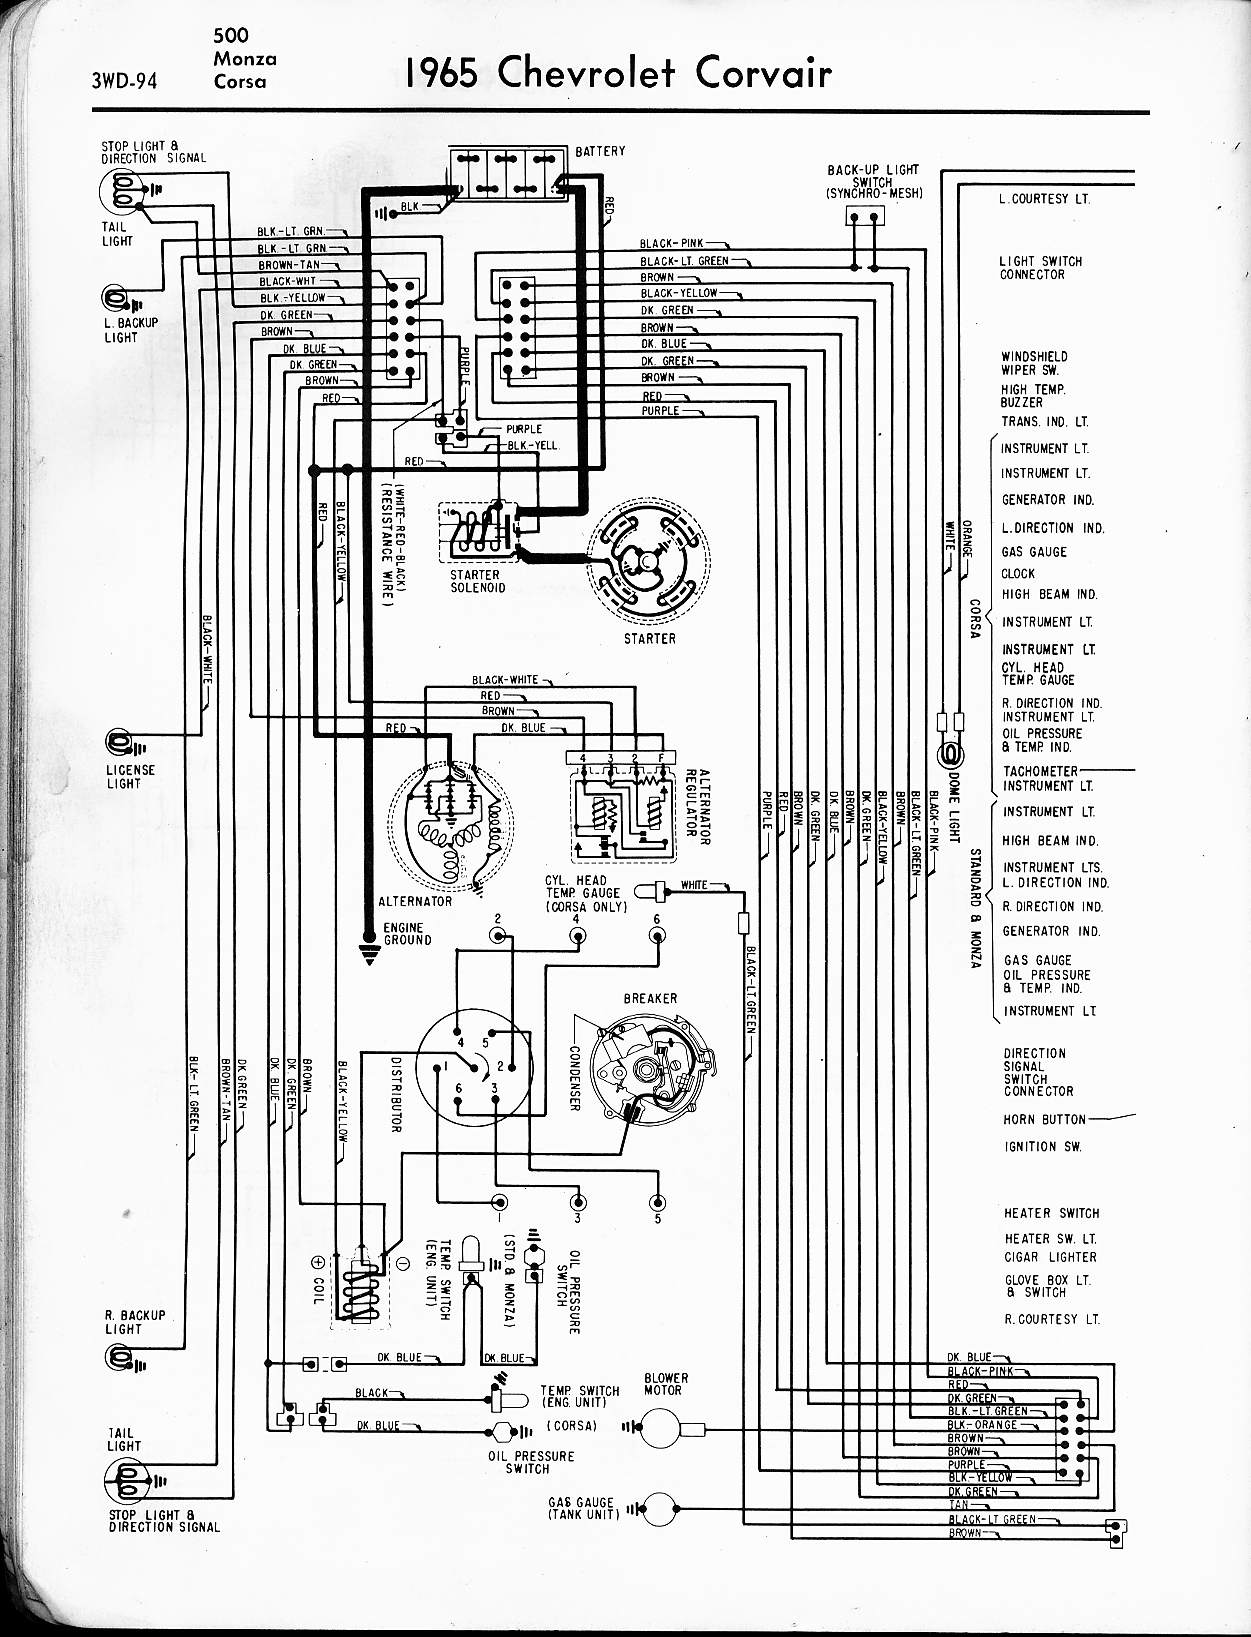 1969 Chevy Nova Alternator Wiring Library 1963 Diagram 1965 Corvair Harness Pictures U2022 Rh Mapavick Co Uk 67 Chevelle